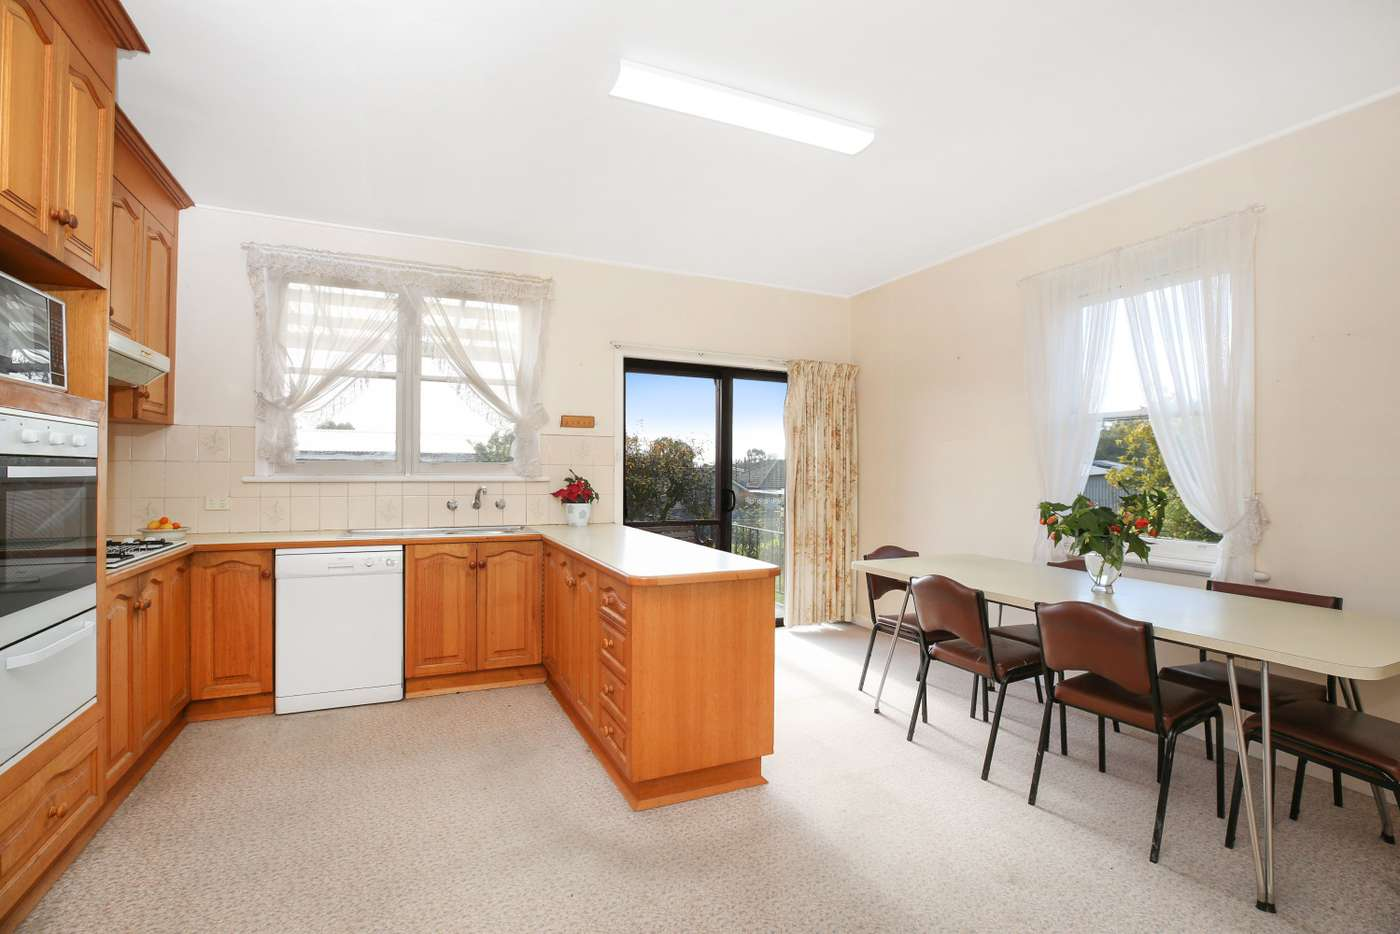 Seventh view of Homely house listing, 18 Hopetoun Street, Camperdown VIC 3260